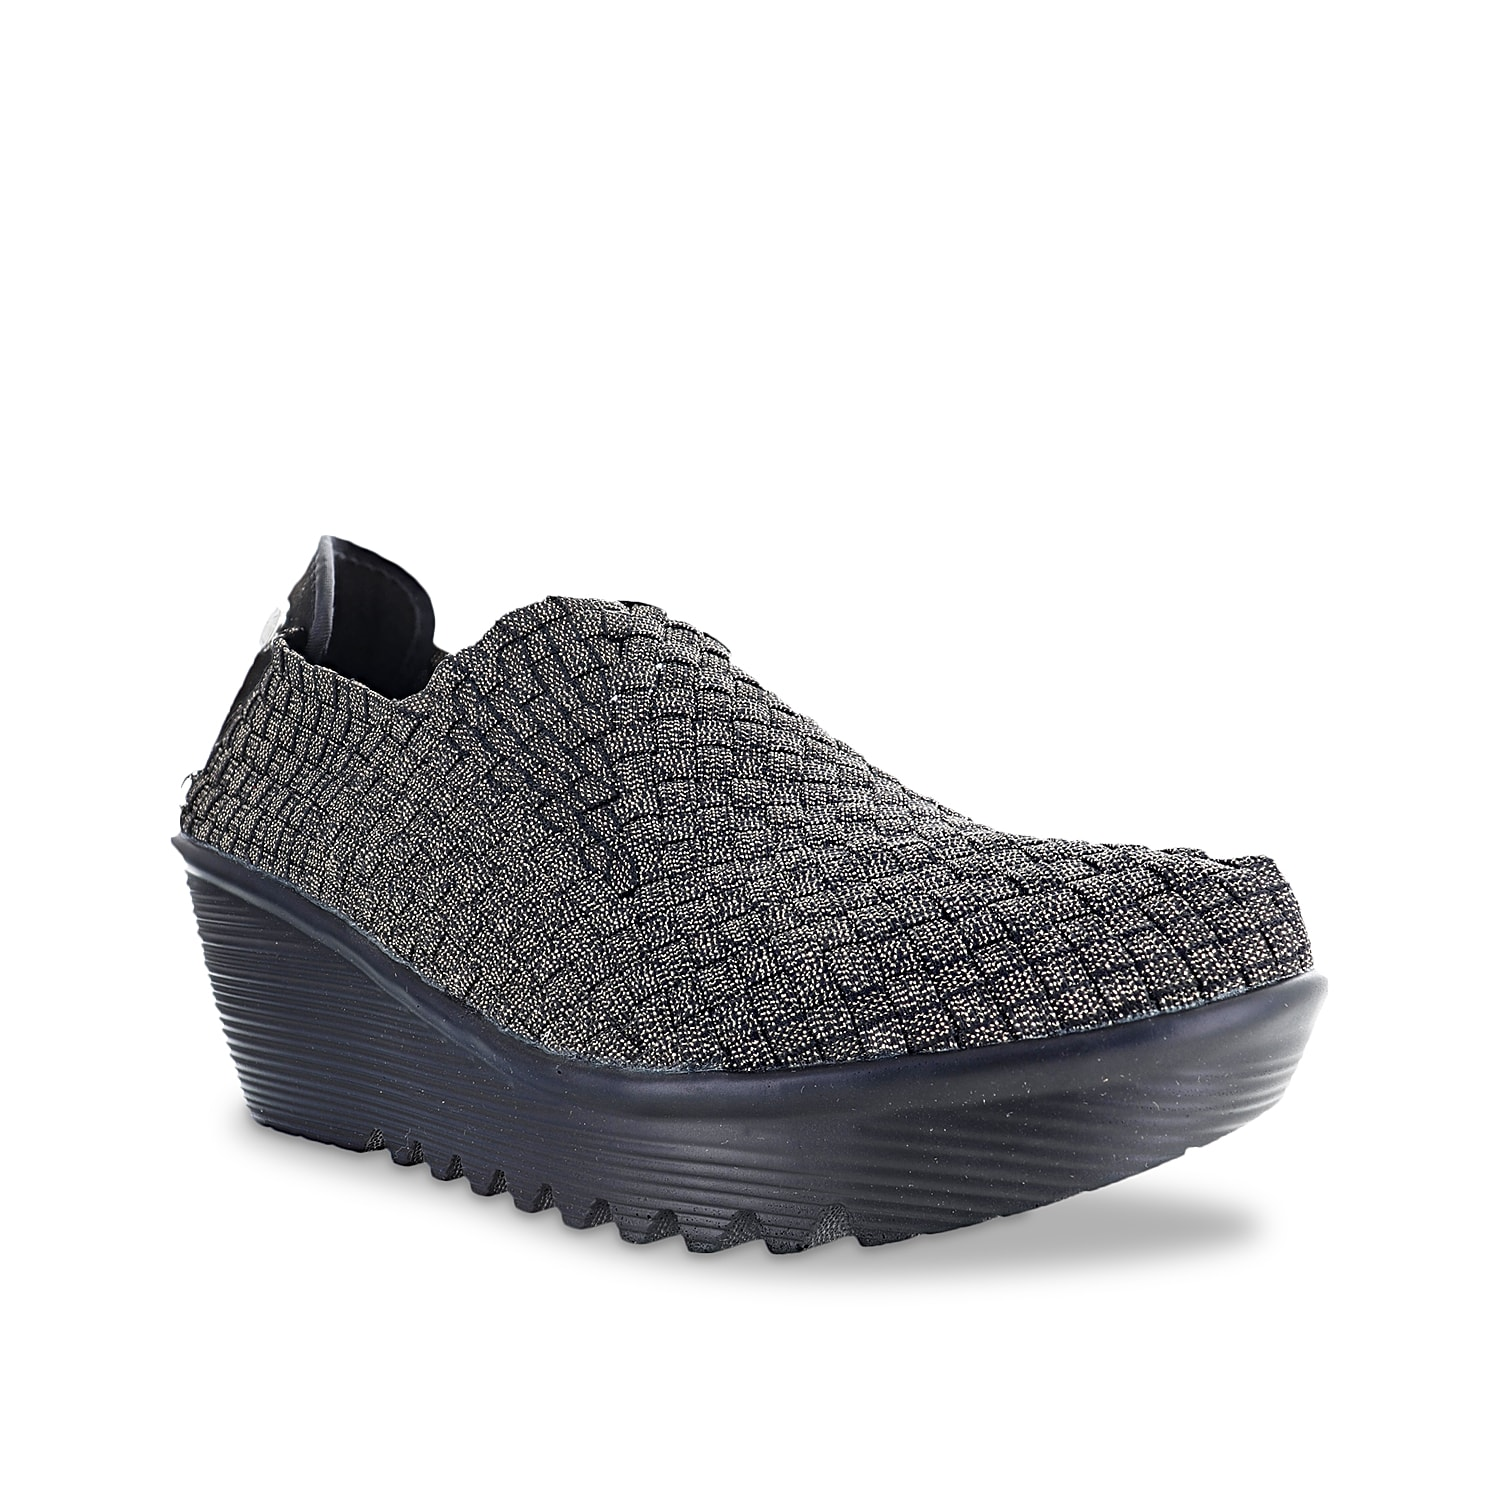 Wrap your feet in exquisite comfort and style offered by the Gem wedge slip-on from Bernie Mev. Supported with a gently stacked wedge heel and signature wavy-tread sole, this slip-on boasts a woven upper that amps up its overall look.